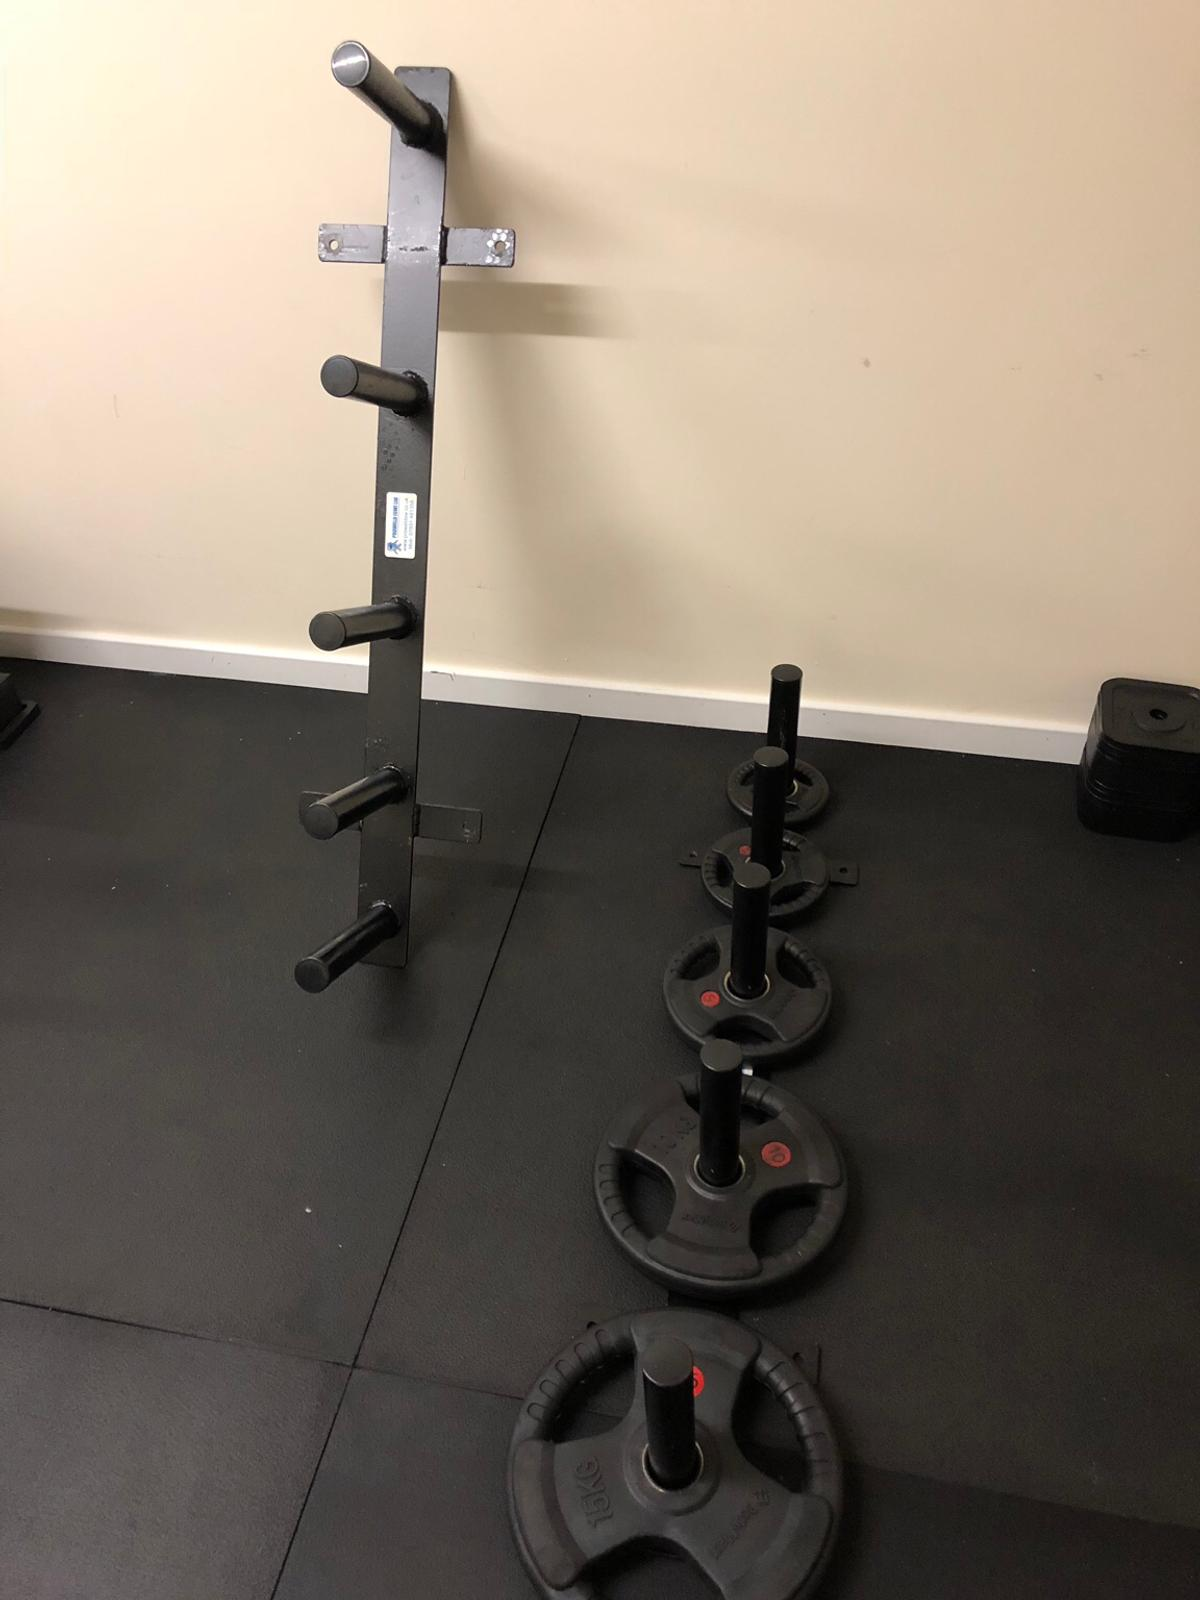 Wall Mount Olympic Weight Plate Storage Rack In Mk43 Cranfield For 45 00 For Sale Shpock